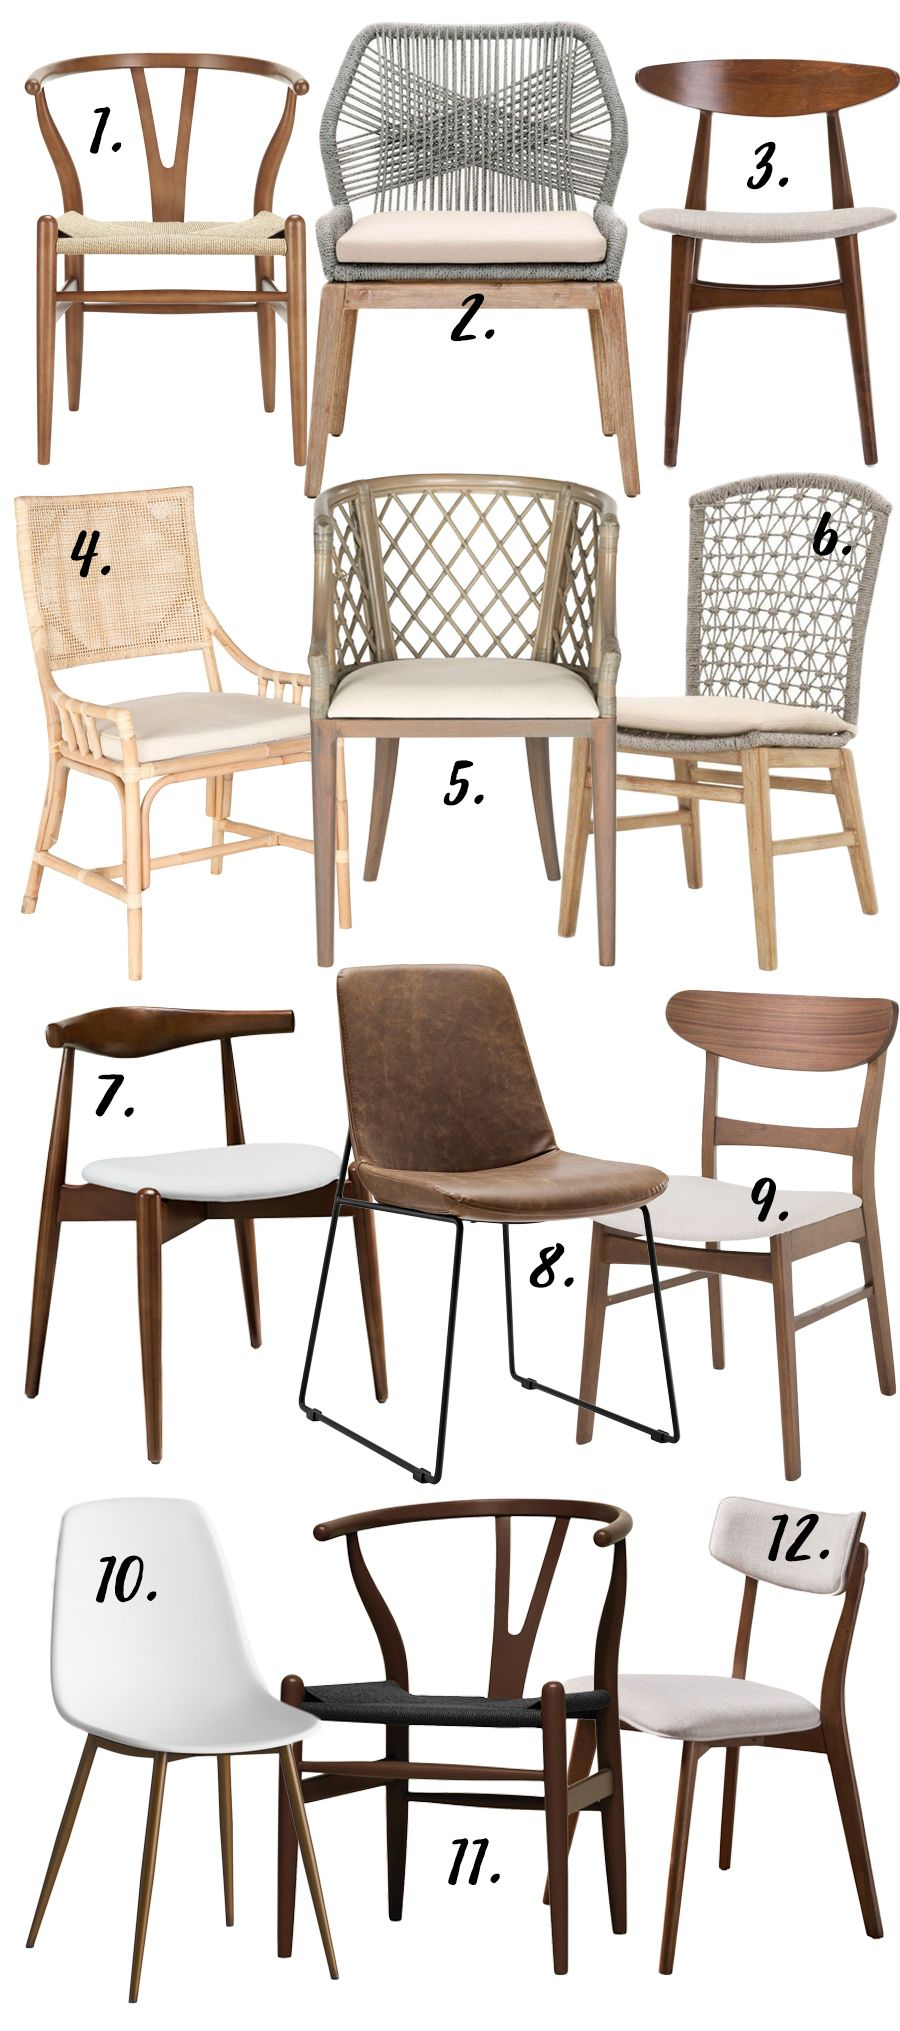 Outstanding Modern Bohemian Dining Room Chairs To Suit Every Budget Cjindustries Chair Design For Home Cjindustriesco